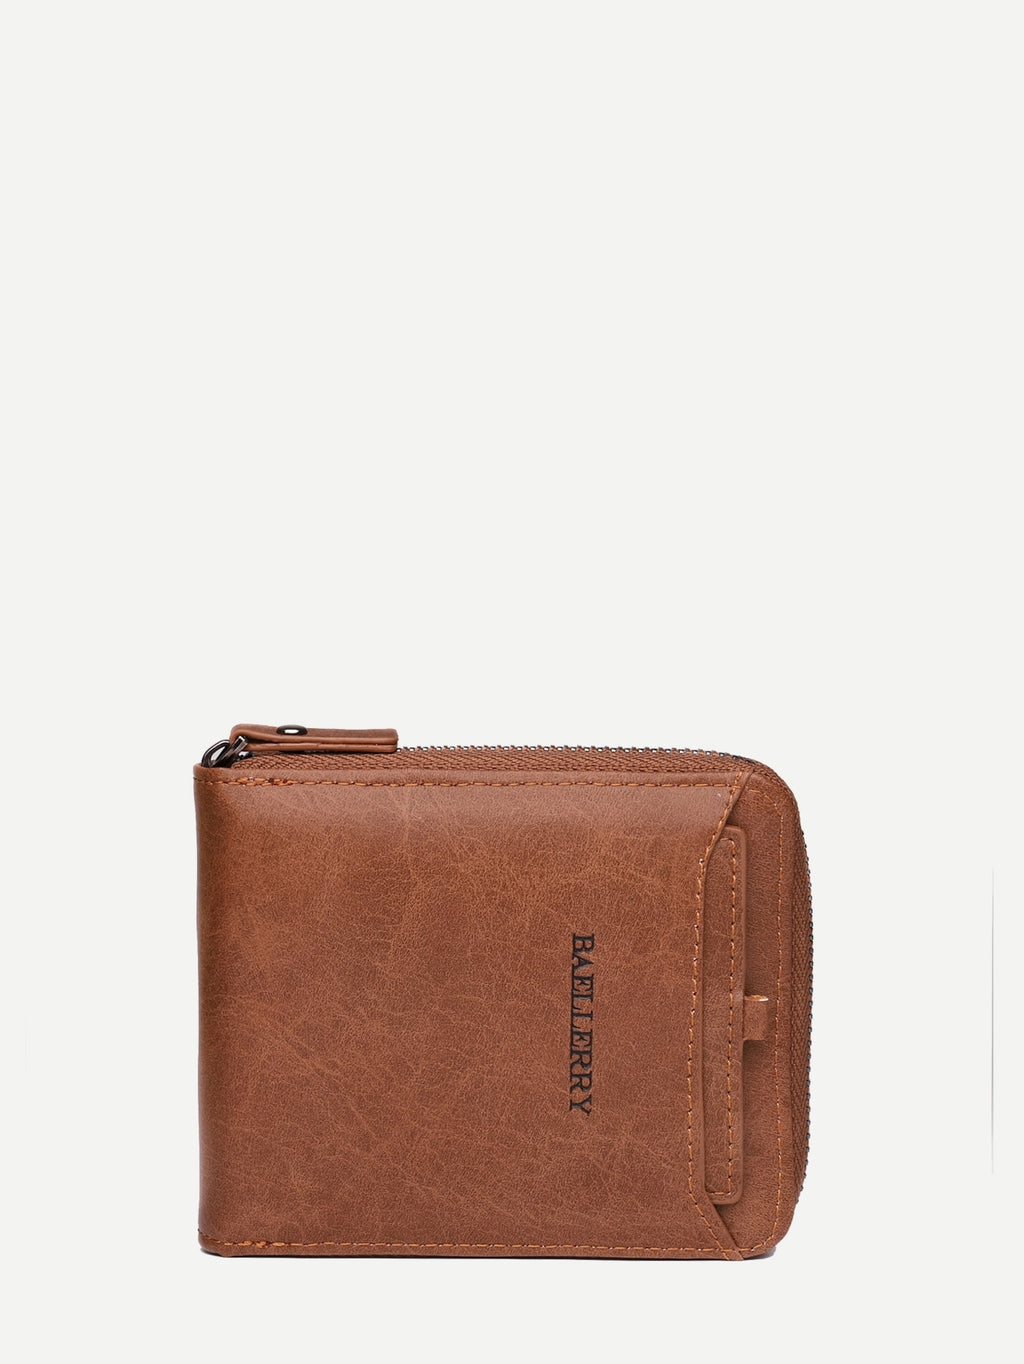 Men's Wallets - Zip Around Solid Wallet